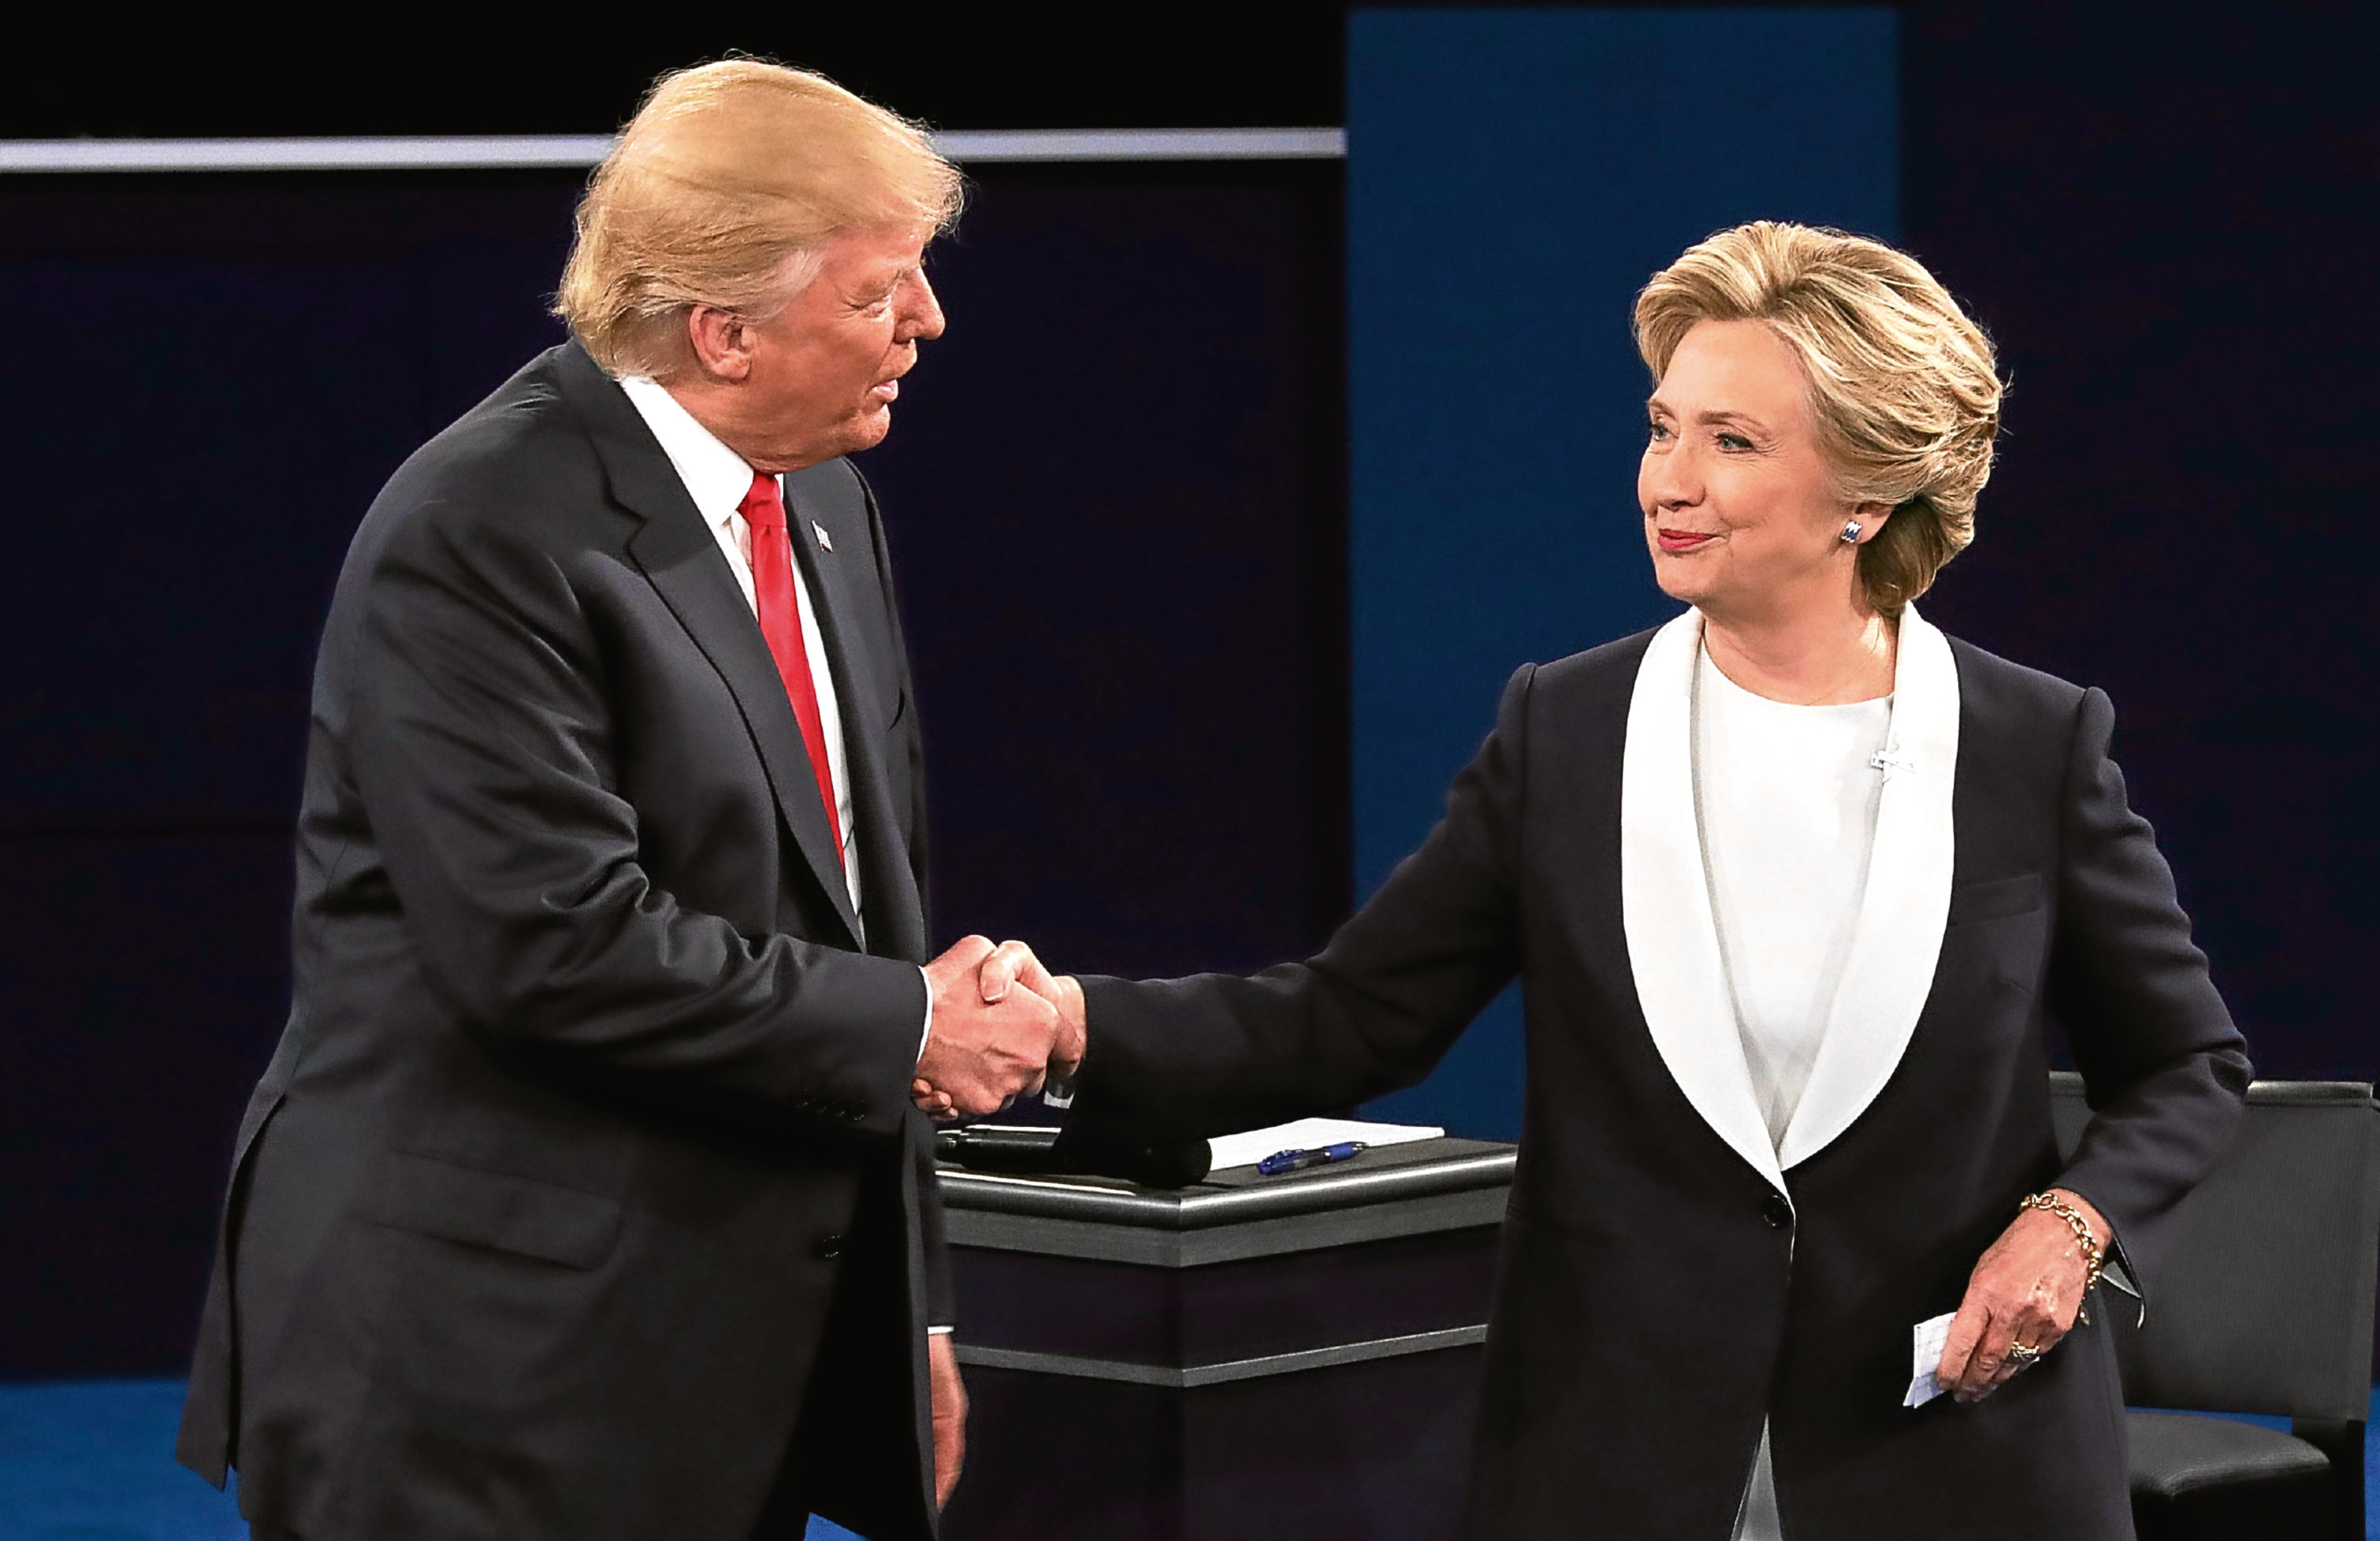 Donald Trump shakes hands with Hillary Clinton (Chip Somodevilla/Getty Images)